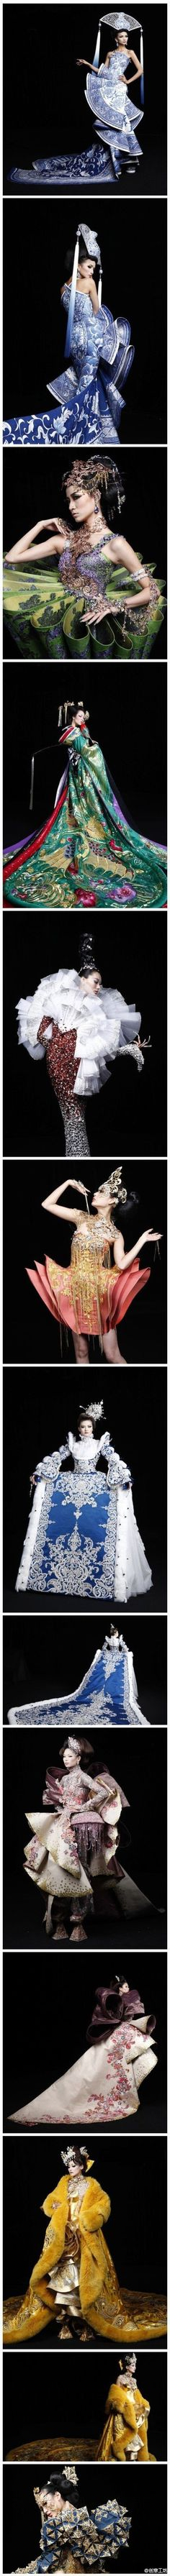 The absolutely exquisite work of Guo Pei - These women are works of art.